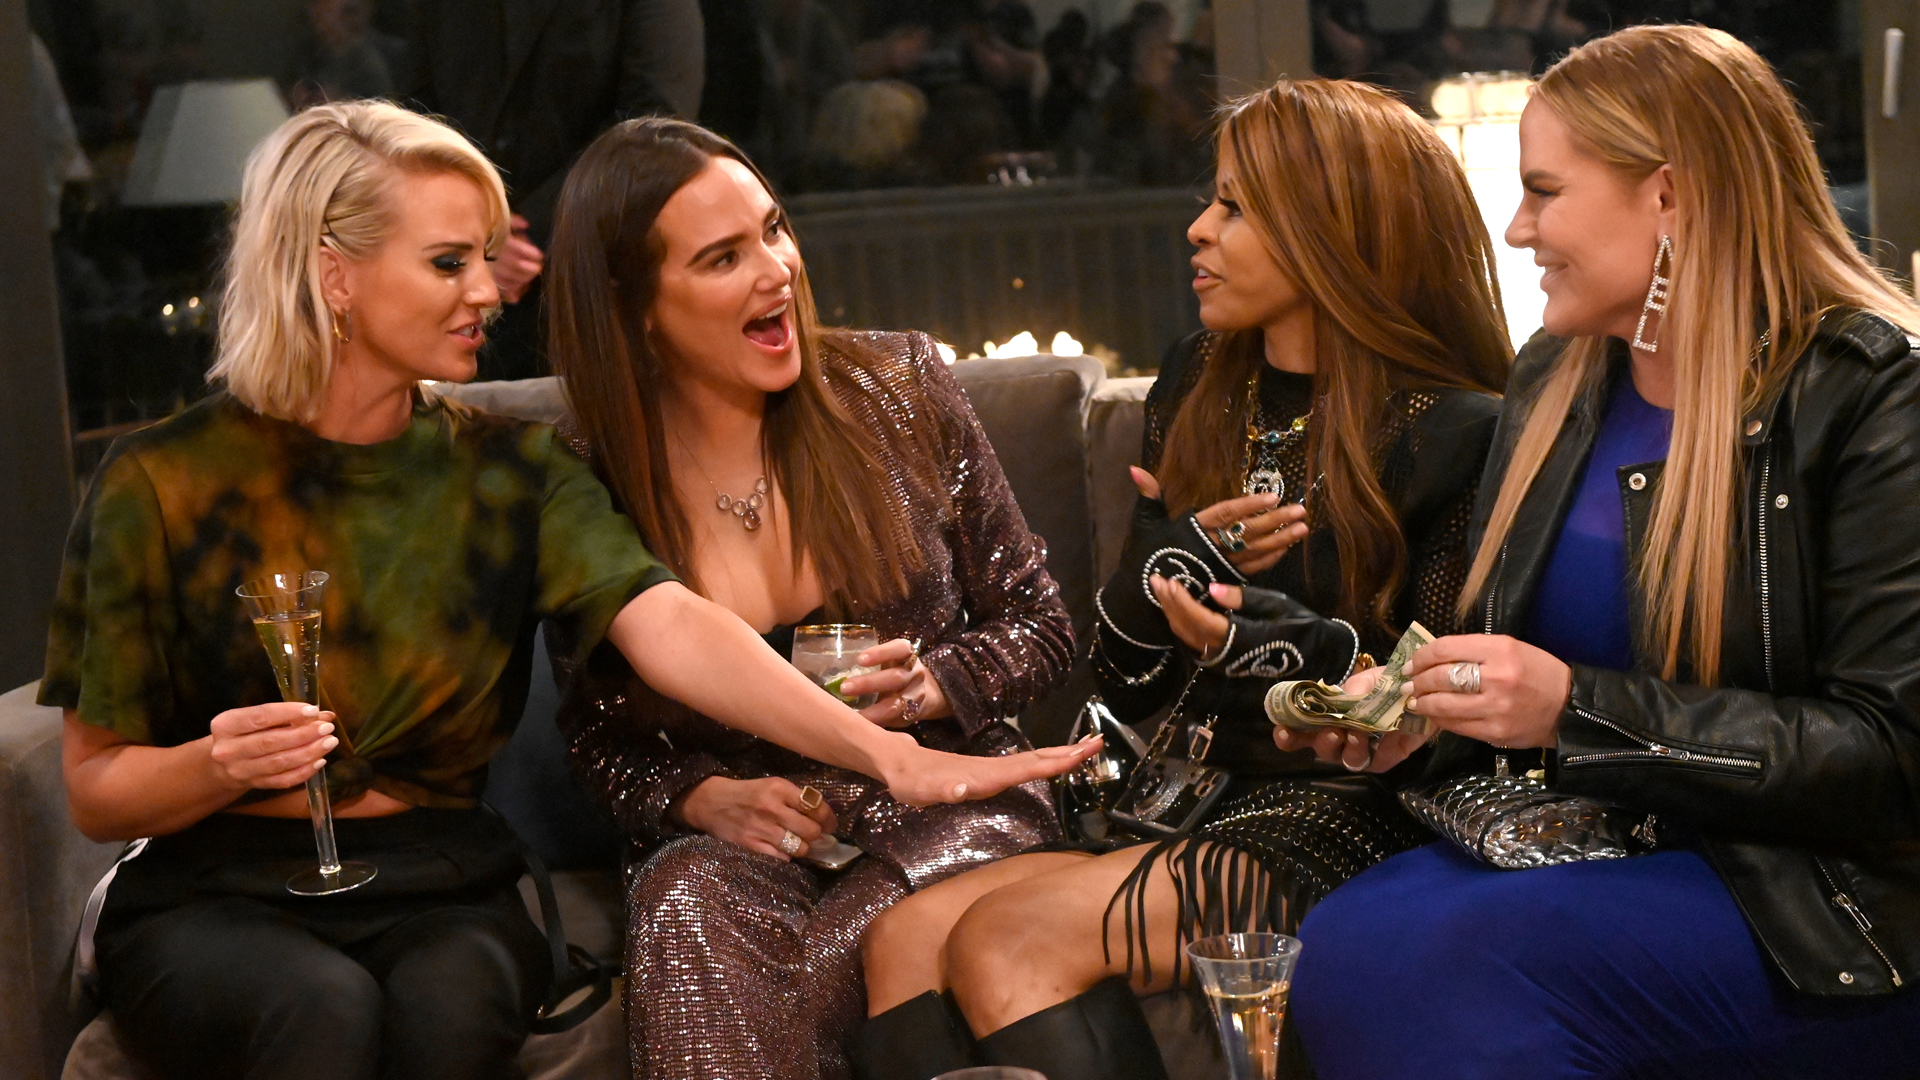 Wednesday December 16 ratings, Reality TV Ratings, The Real Housewives of Salt Lake City Ratings, The Real Housewives of Orange County ratings, RHOSLC ratings, RHOC ratings, Bravo, Bravo TV, Ratings, The Challenge: Double Agents ratings